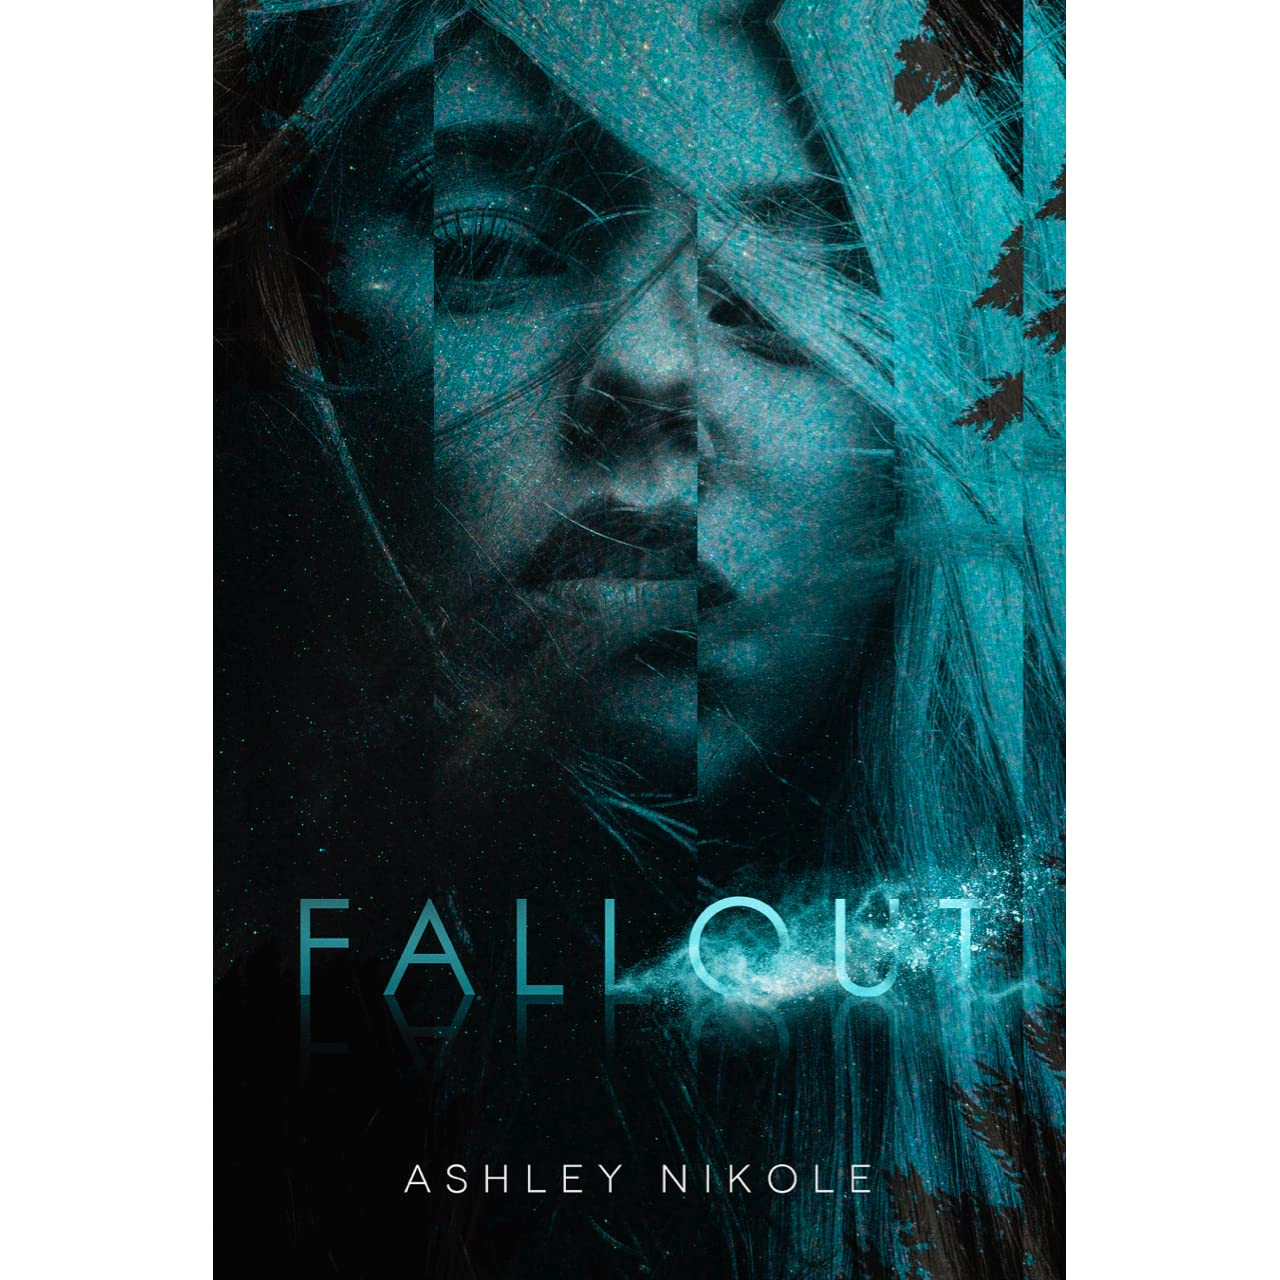 Fallout (A Psychological Thriller)